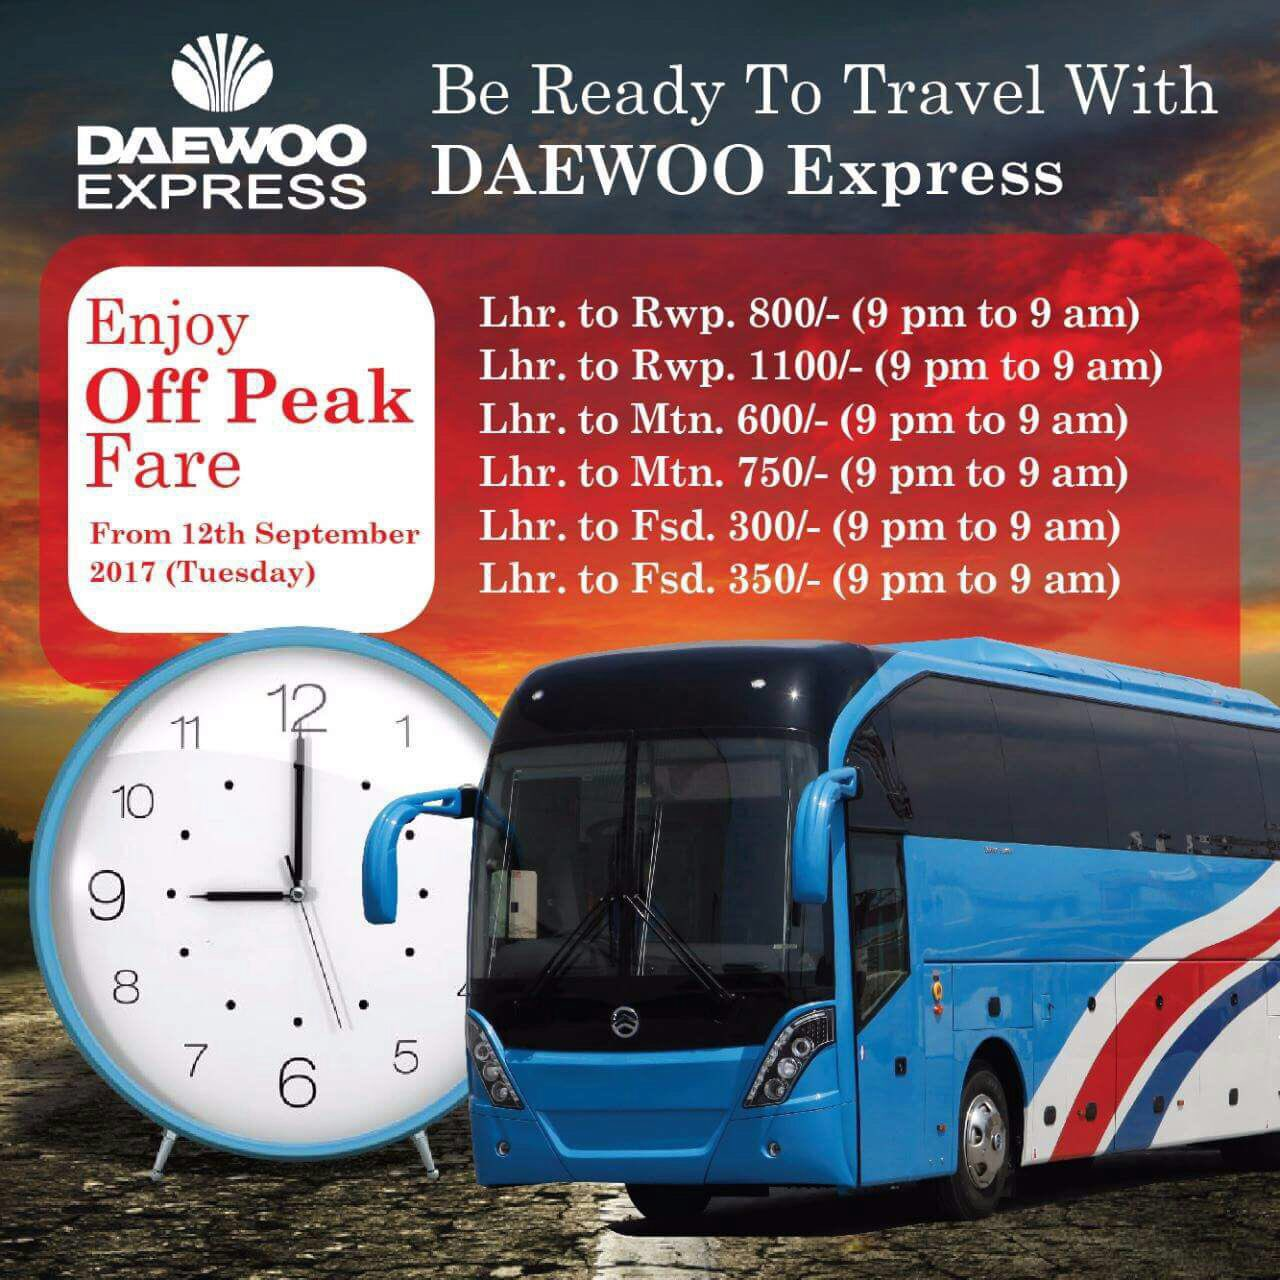 Daewoo Express on Twitter: